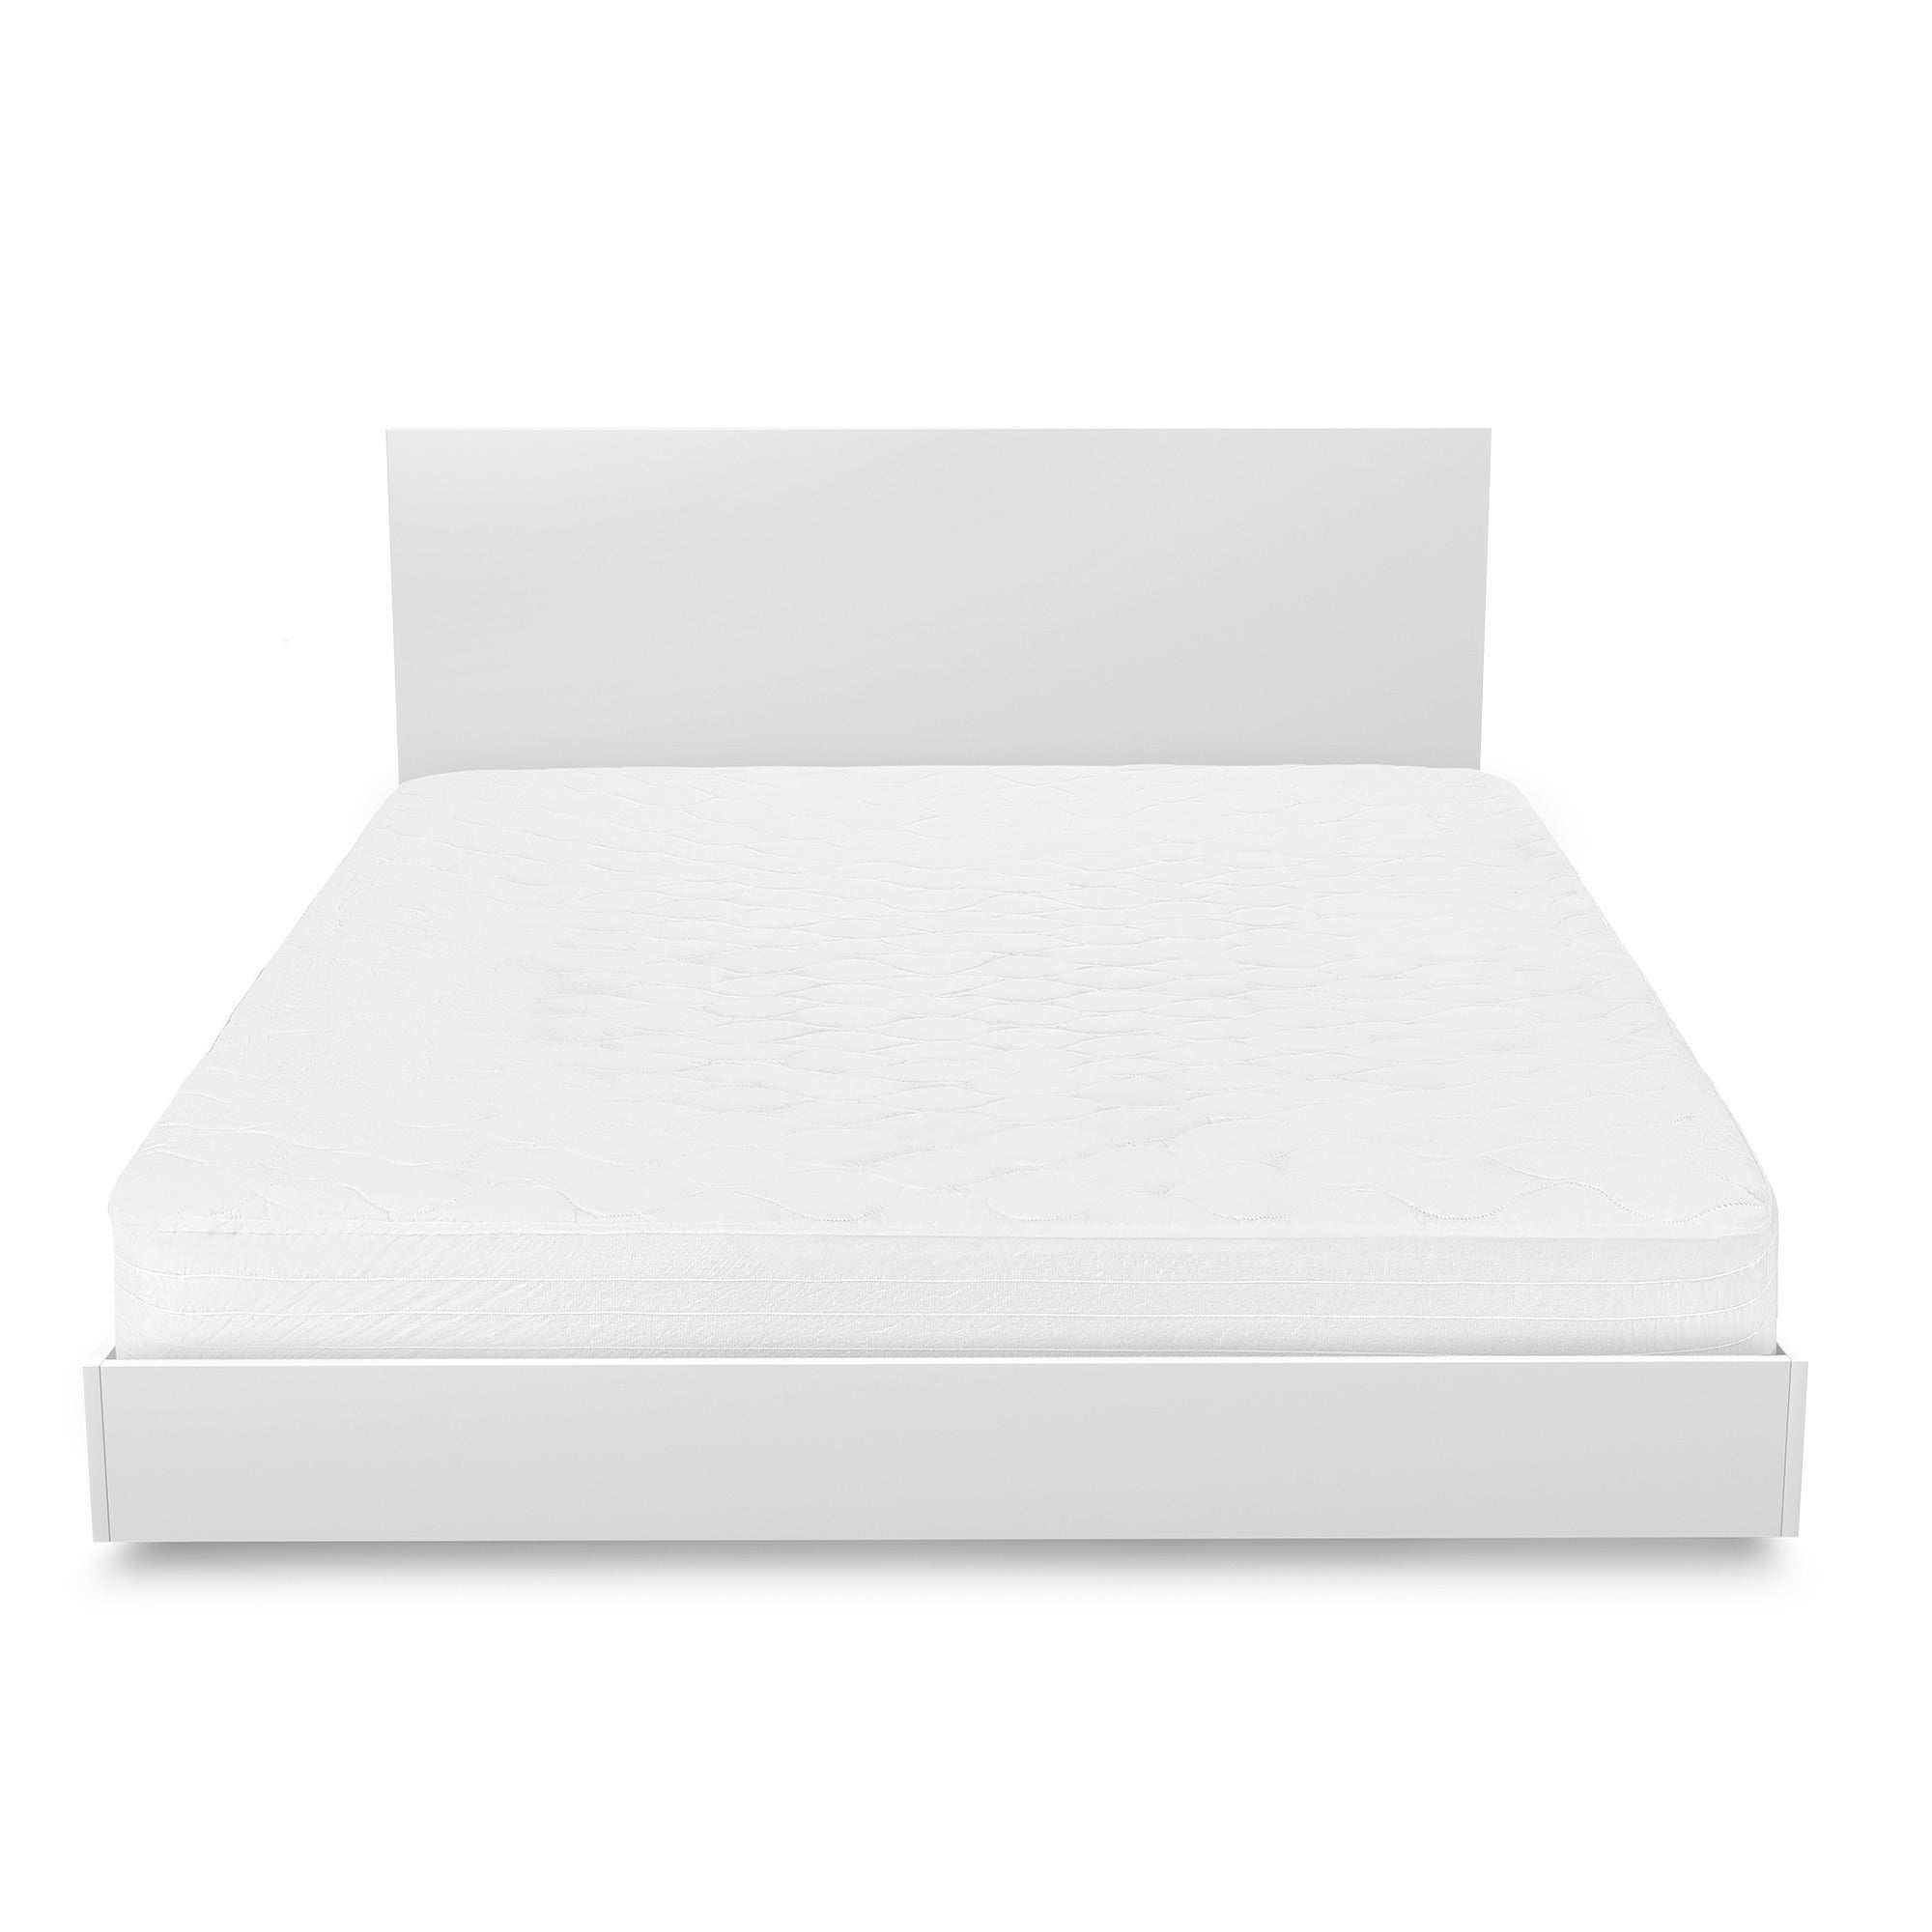 cool free protector overstock tek waterproof white shipping product king bedding thomasville bath mattress today